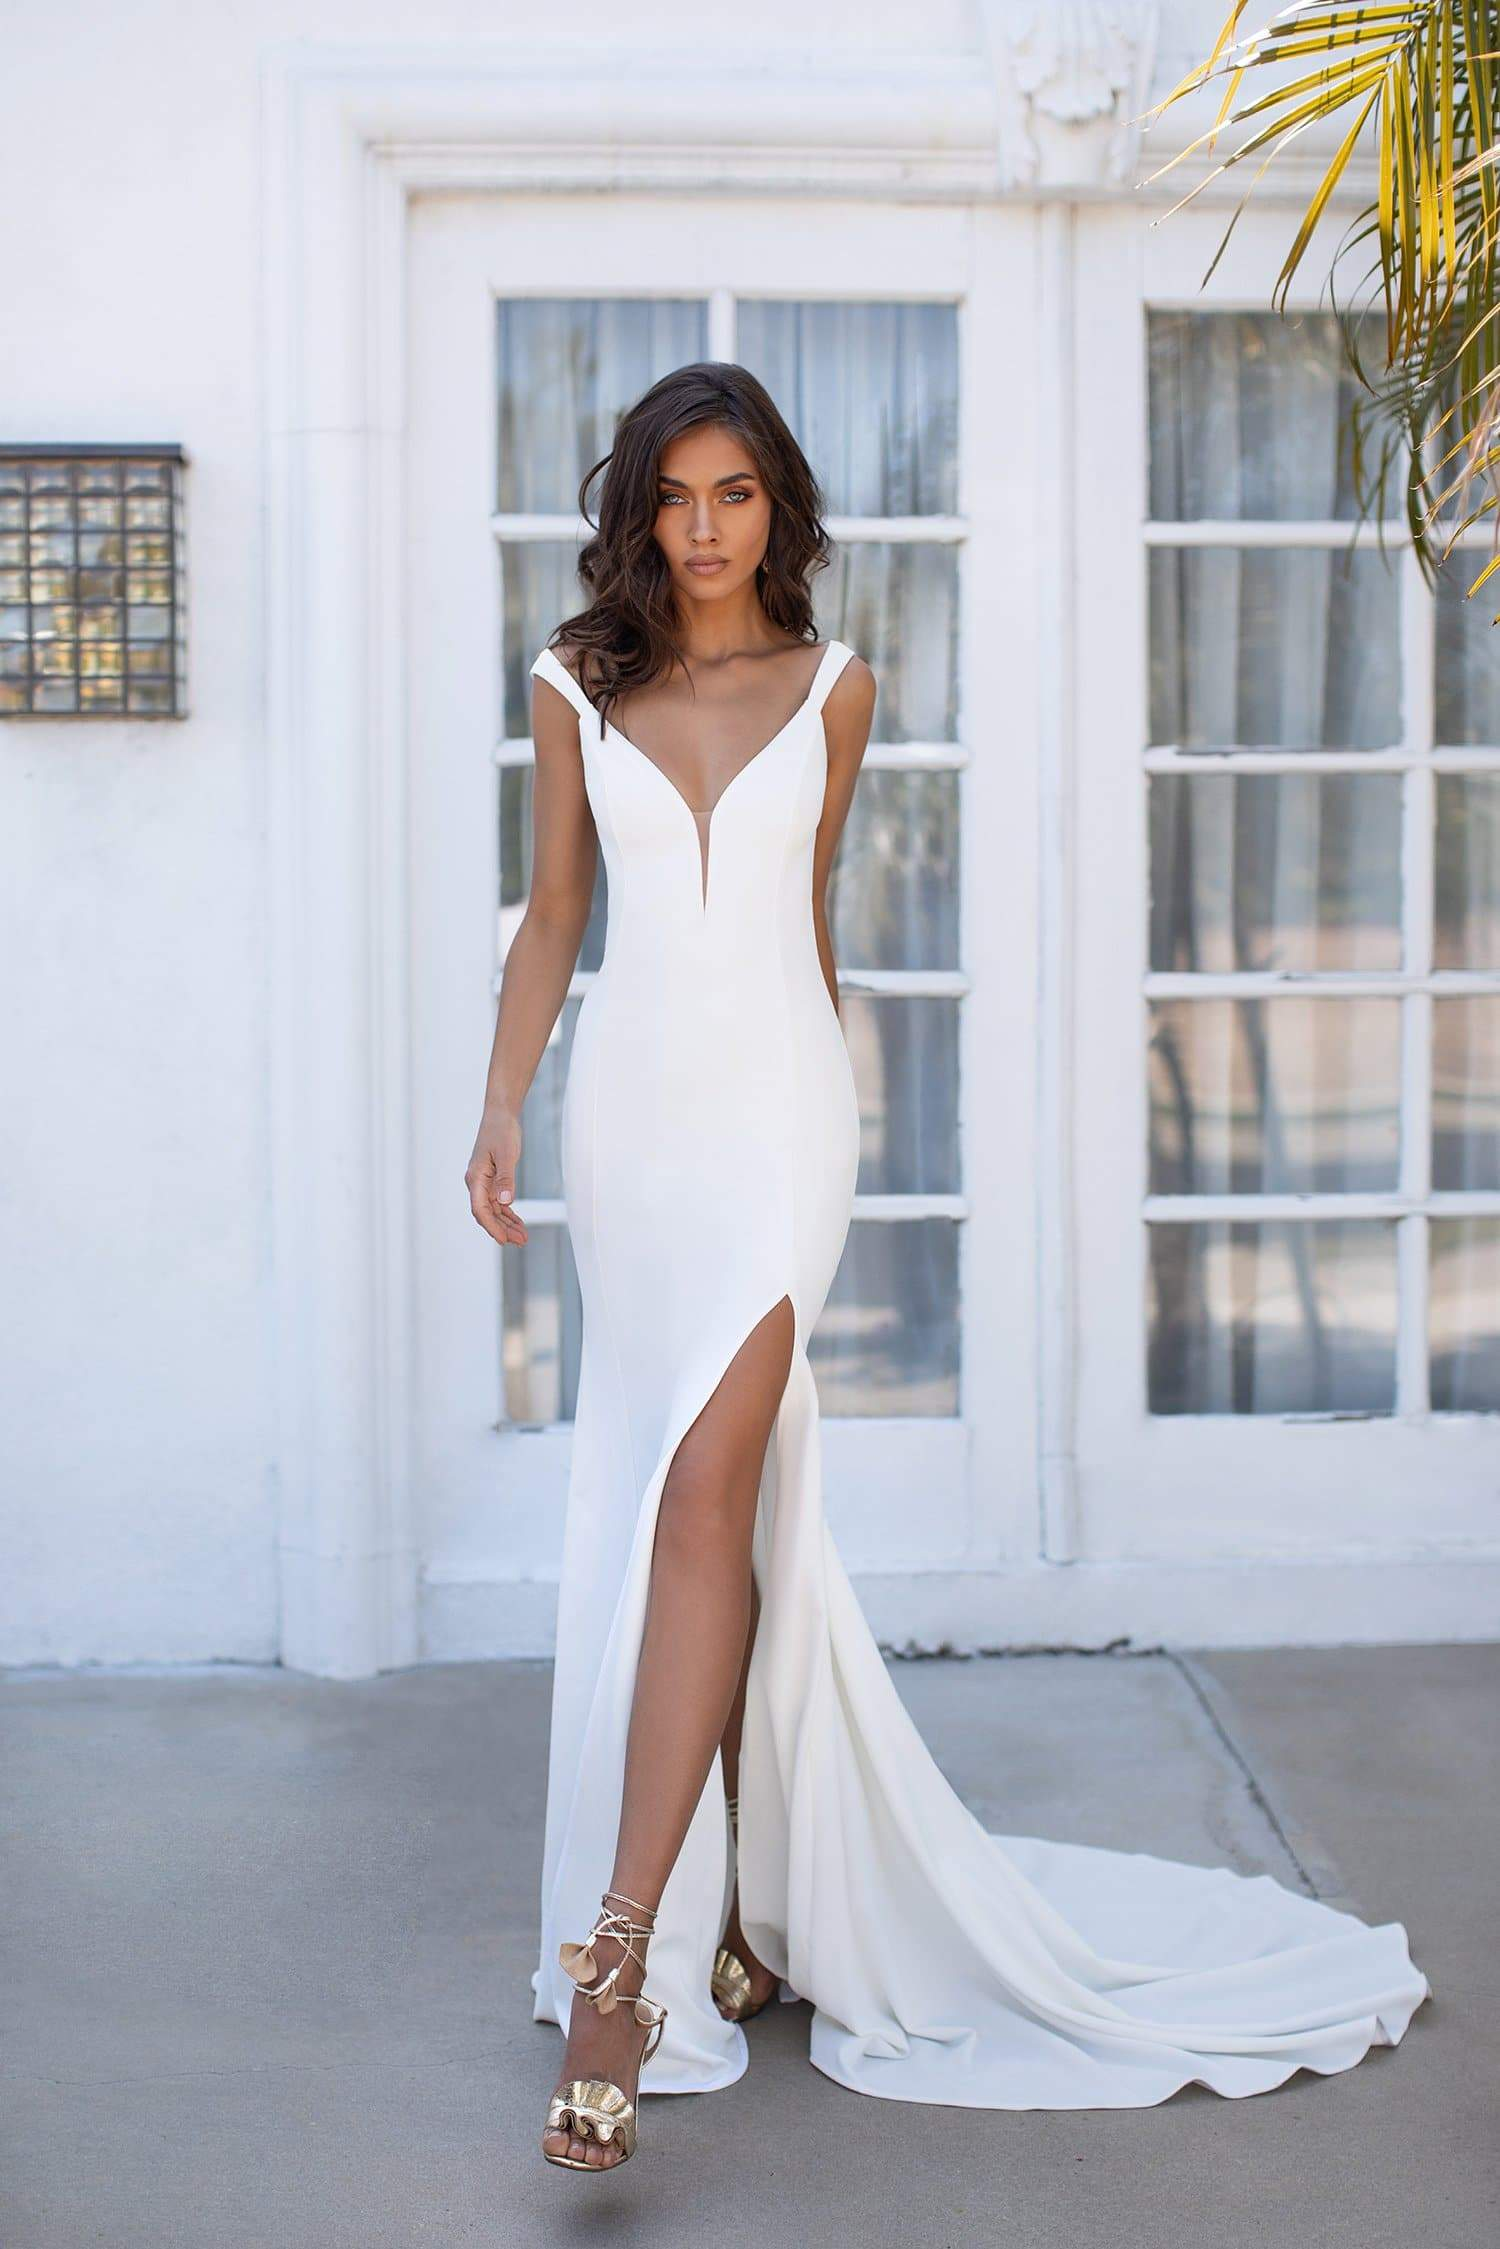 Reina - White Mermaid Gown with Plunge Neckline & Low Back